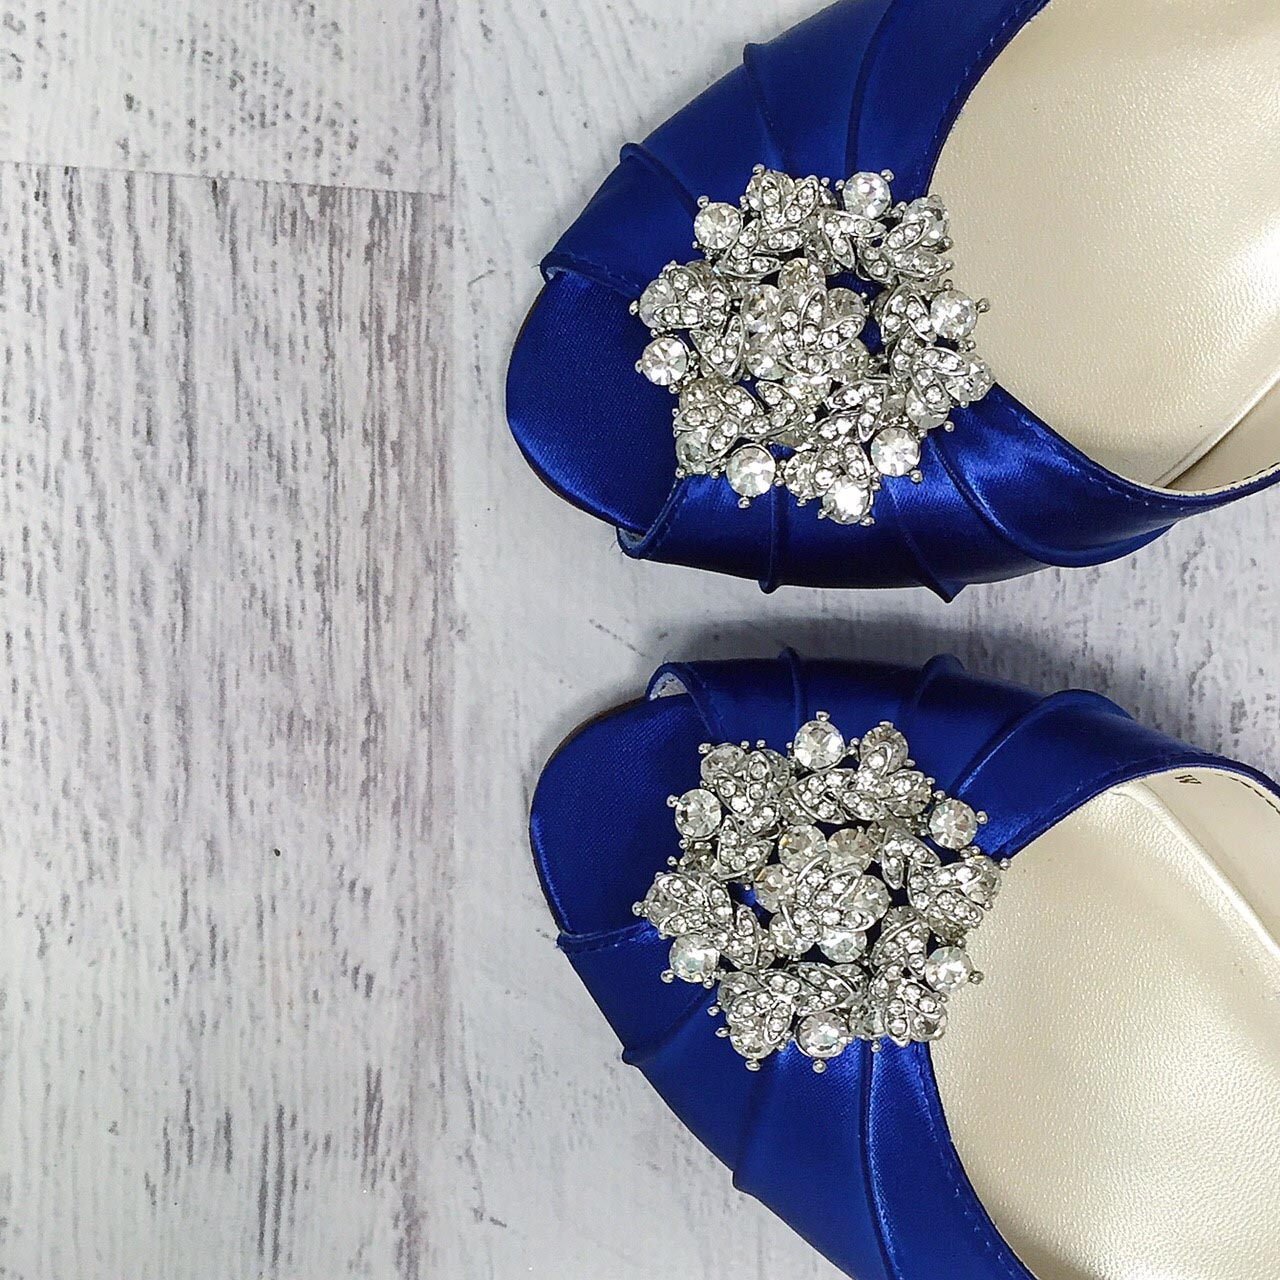 Royal Blue Open Toe Low Heel Wedding Shoes with Silver Crystal Brooch Comfortable Custom Wedding Shoes by Ellie Wren